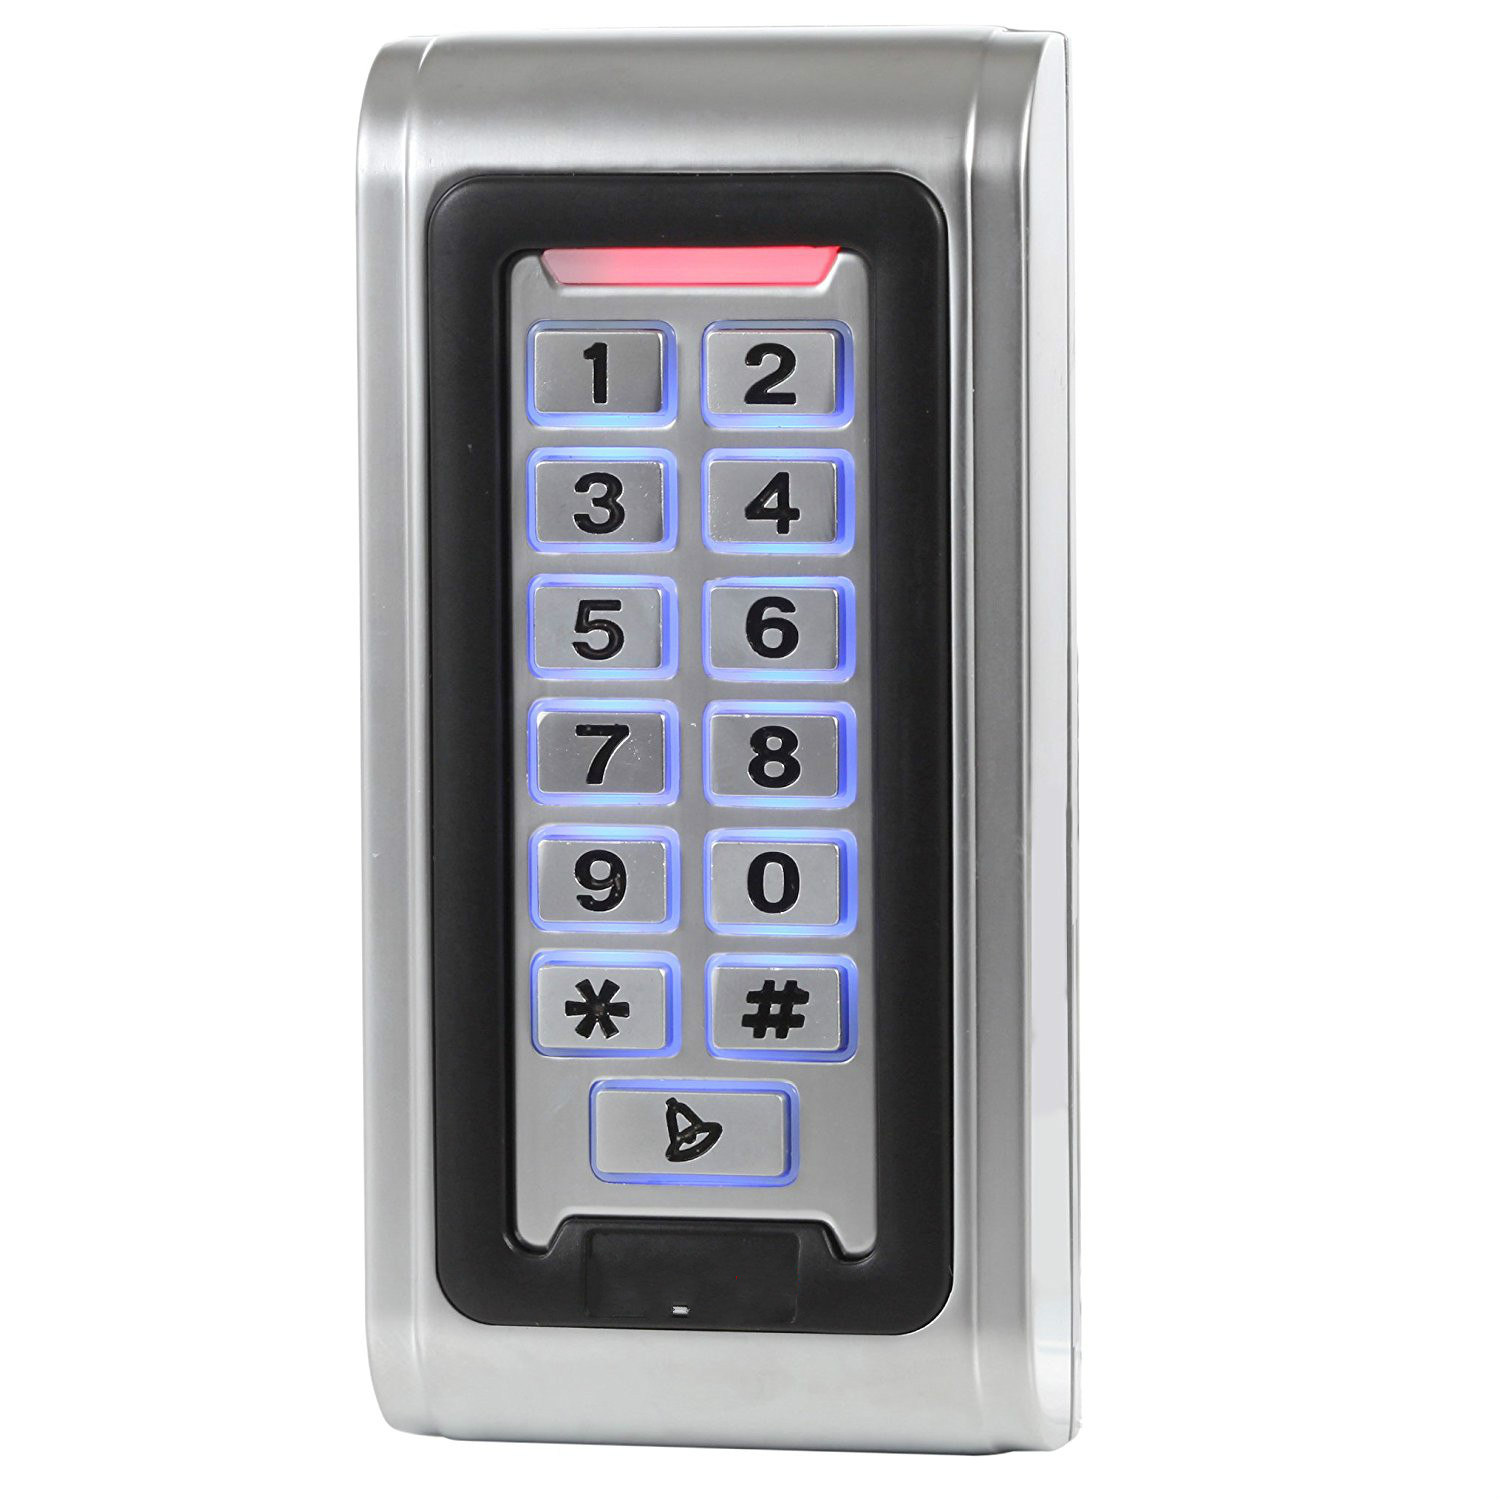 OBO HANDS Waterproof IP68 Metal Case RFID ID Keypad Single Door Stand-alone Access Control & Wiegand 26 bit I/O